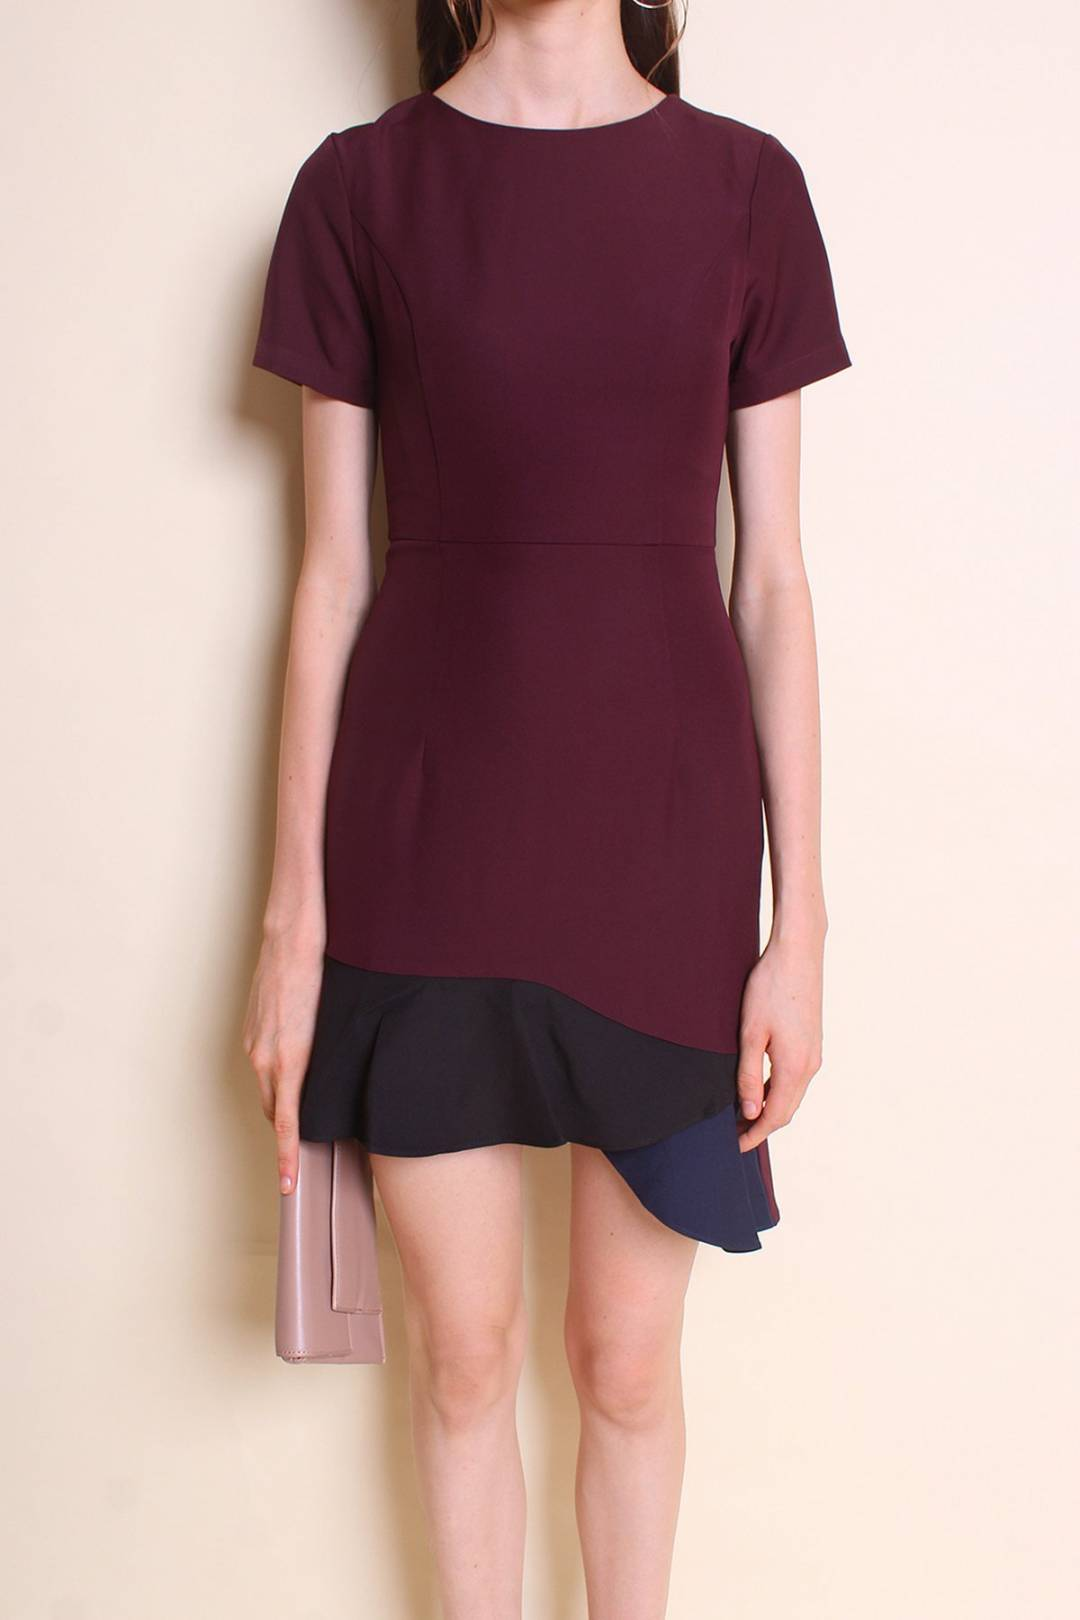 RESTOCKED** CHELSEA COLOURBLOCK SLEEVED WORK DRESS IN BURGUNDY [S/M/L/XL]